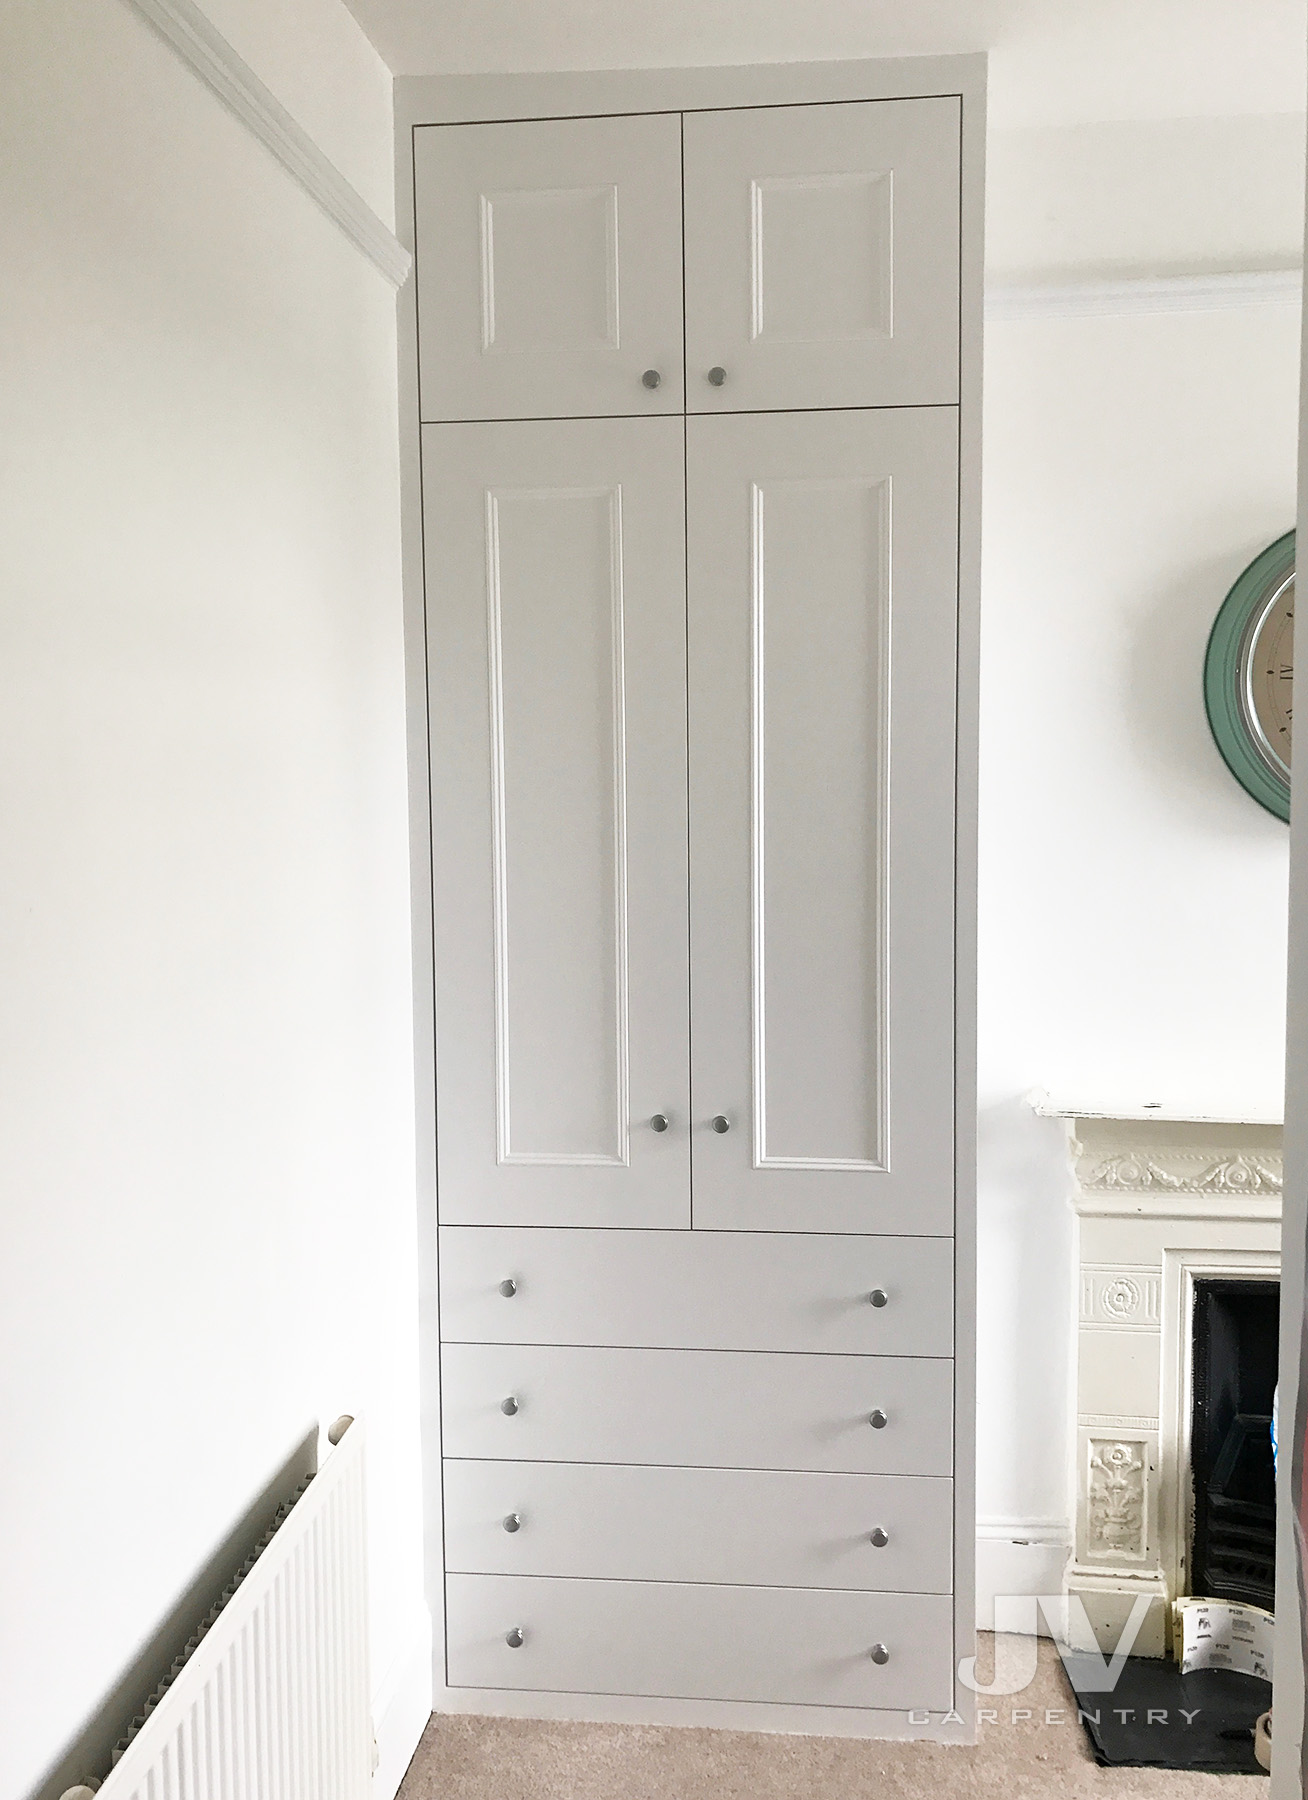 White fitted wardrobe with drawers